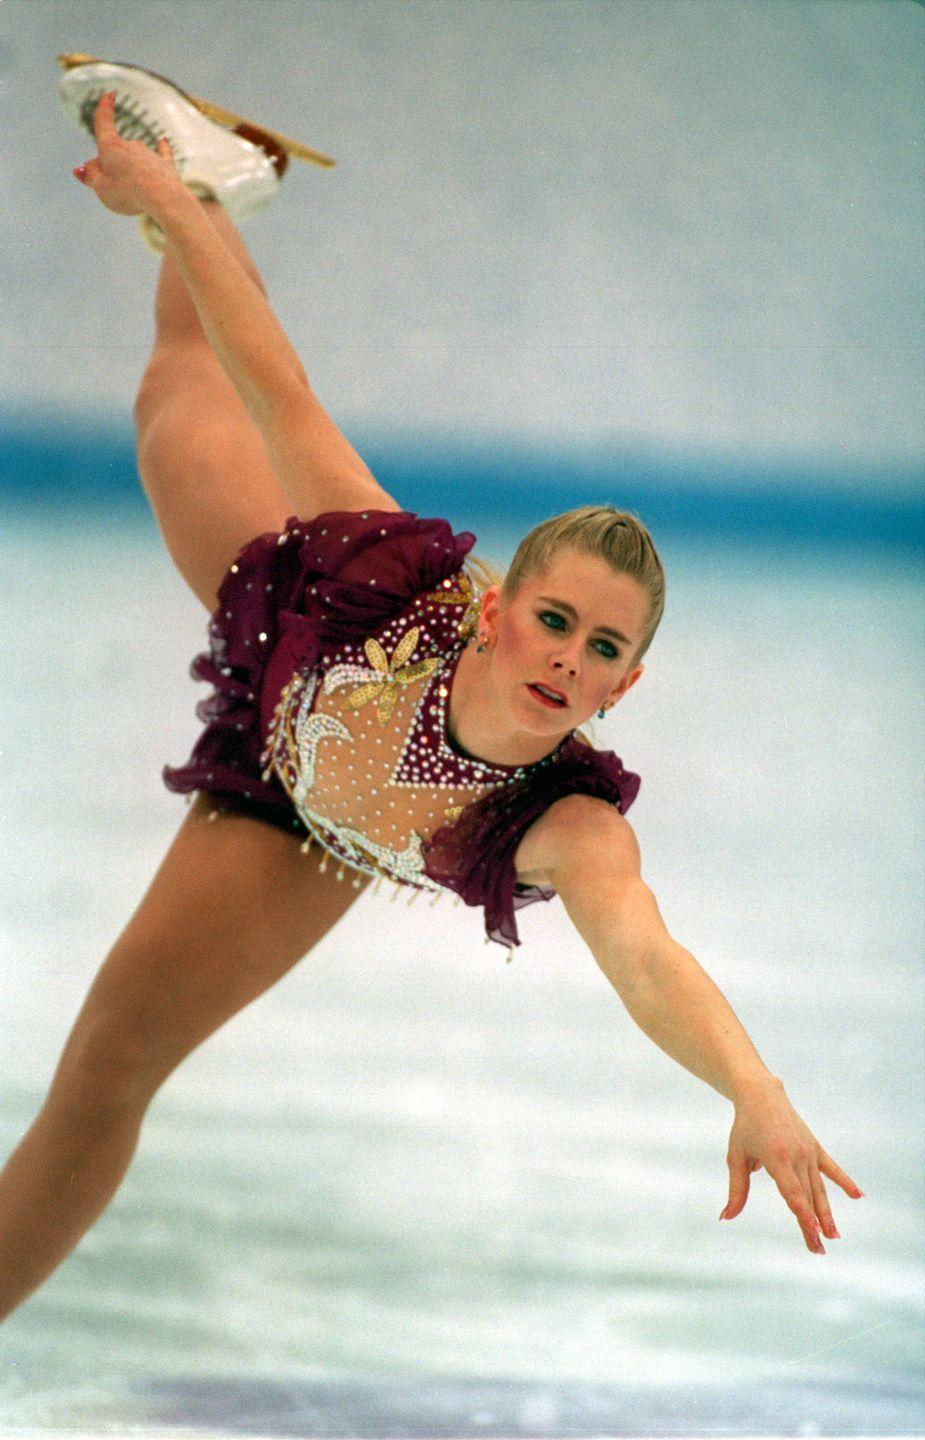 <p>Right before the '94 Olympics, Tanya Harding's ex-husband planned an attack on her competitor, Nancy Kerrigan. Harding was permitted to compete, but had to re-skate her program after her laces broke. She only came in eighth, while Kerrigan took home silver.</p>